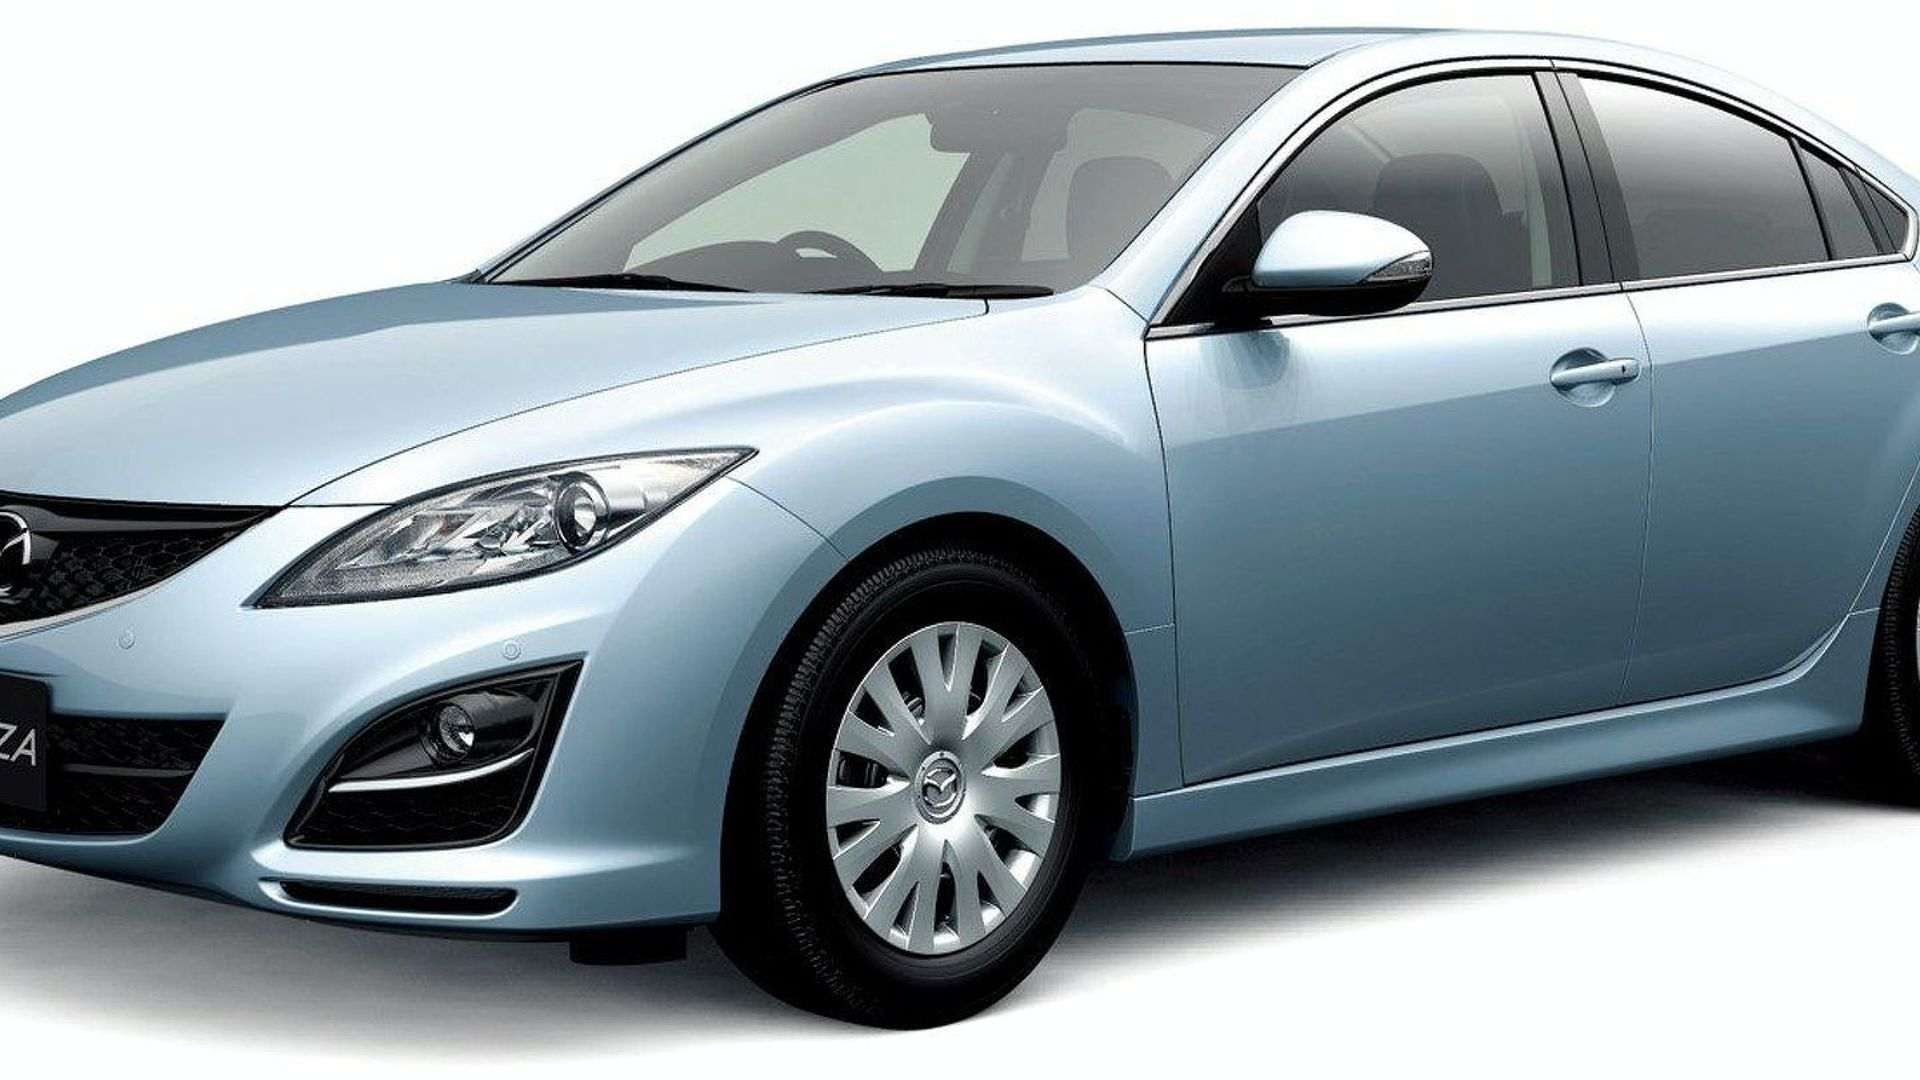 2010 Mazda6 / Atenza Facelift First Details and Photos Released